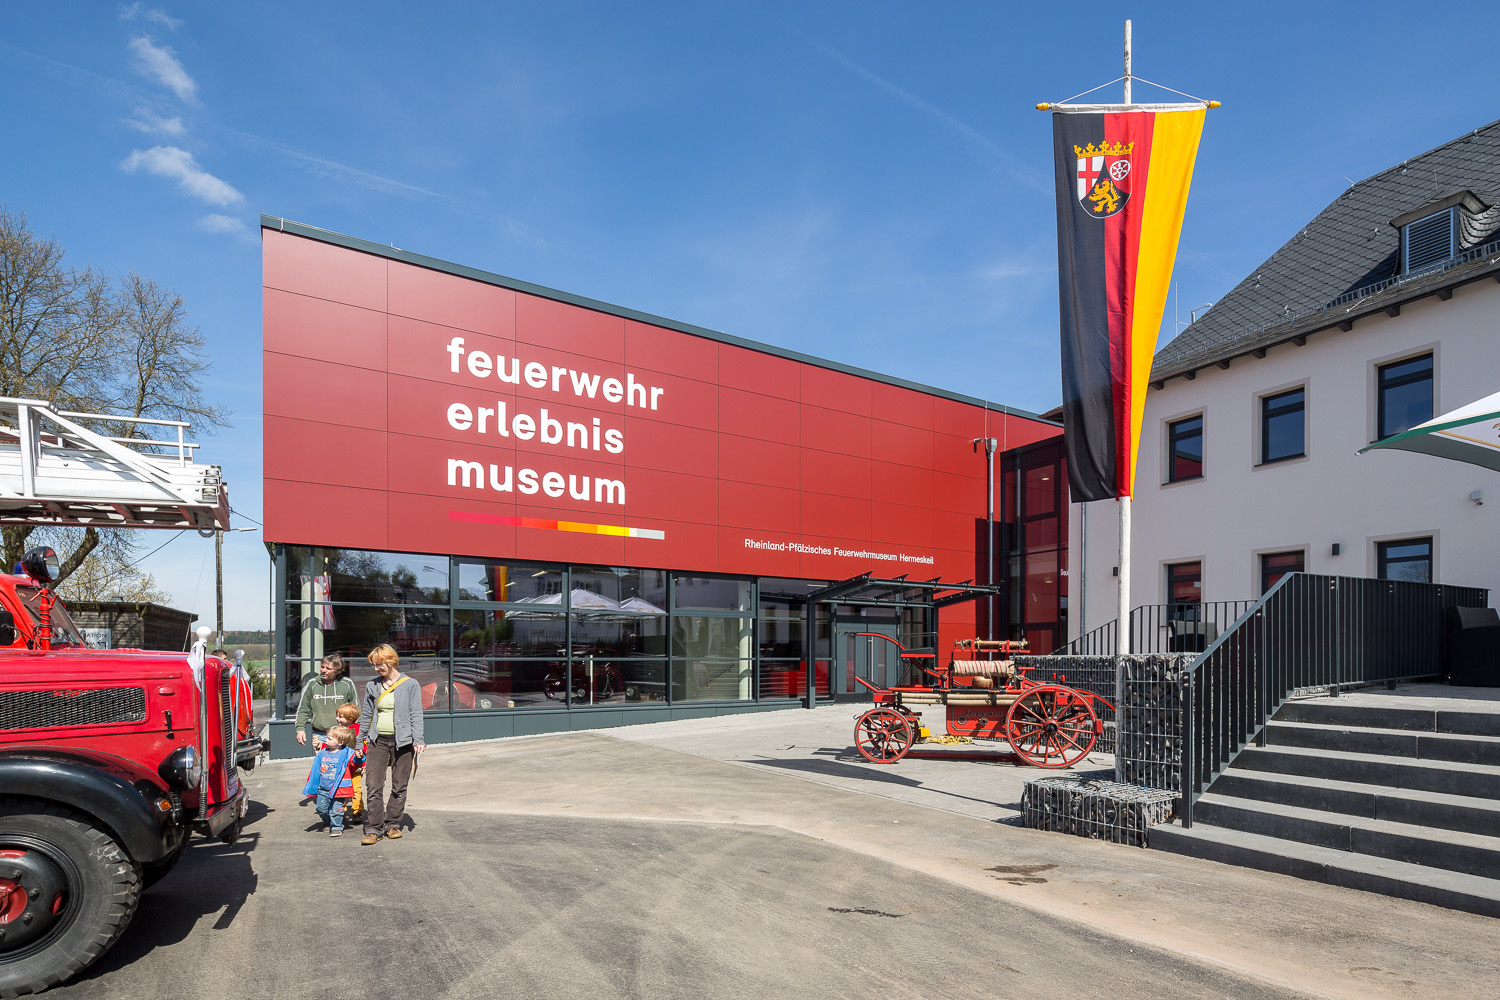 Exterior view of the fire brigade museum